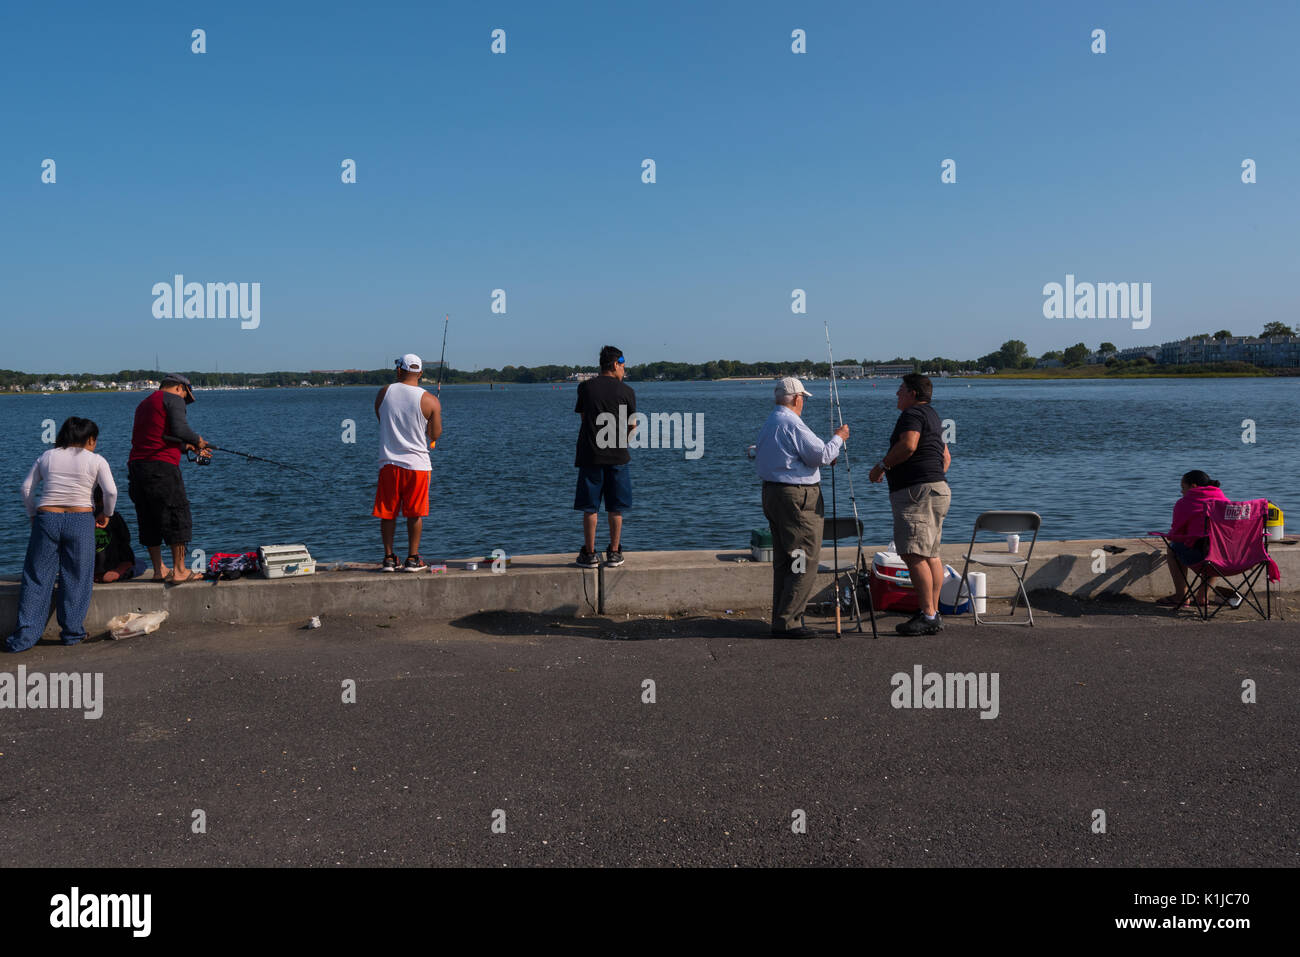 Surfcasting stock photos surfcasting stock images alamy for Belmar nj fishing